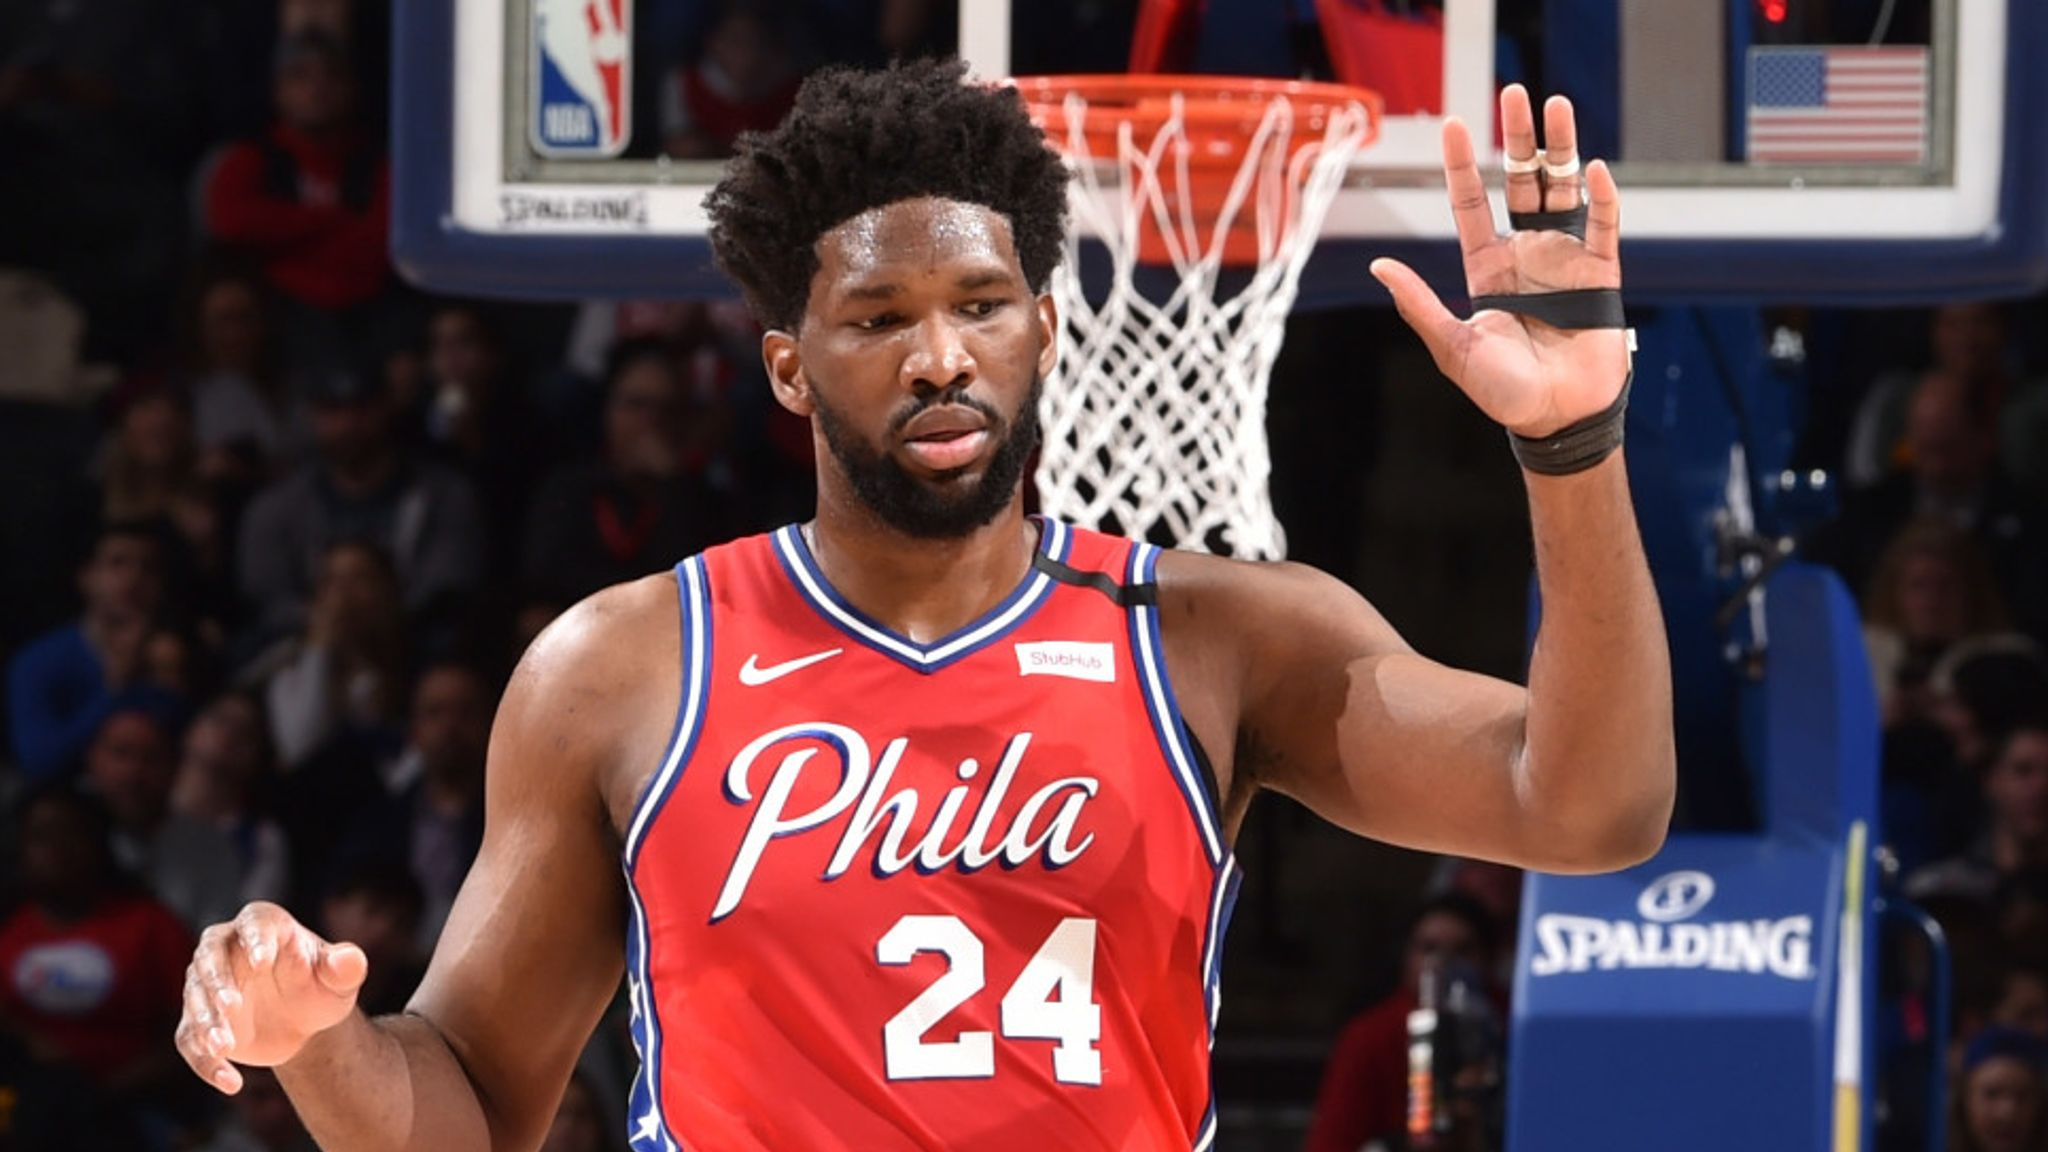 Joel Embiid honours Kobe Bryant and leads Philadelphia 76ers to victory in his return from injury